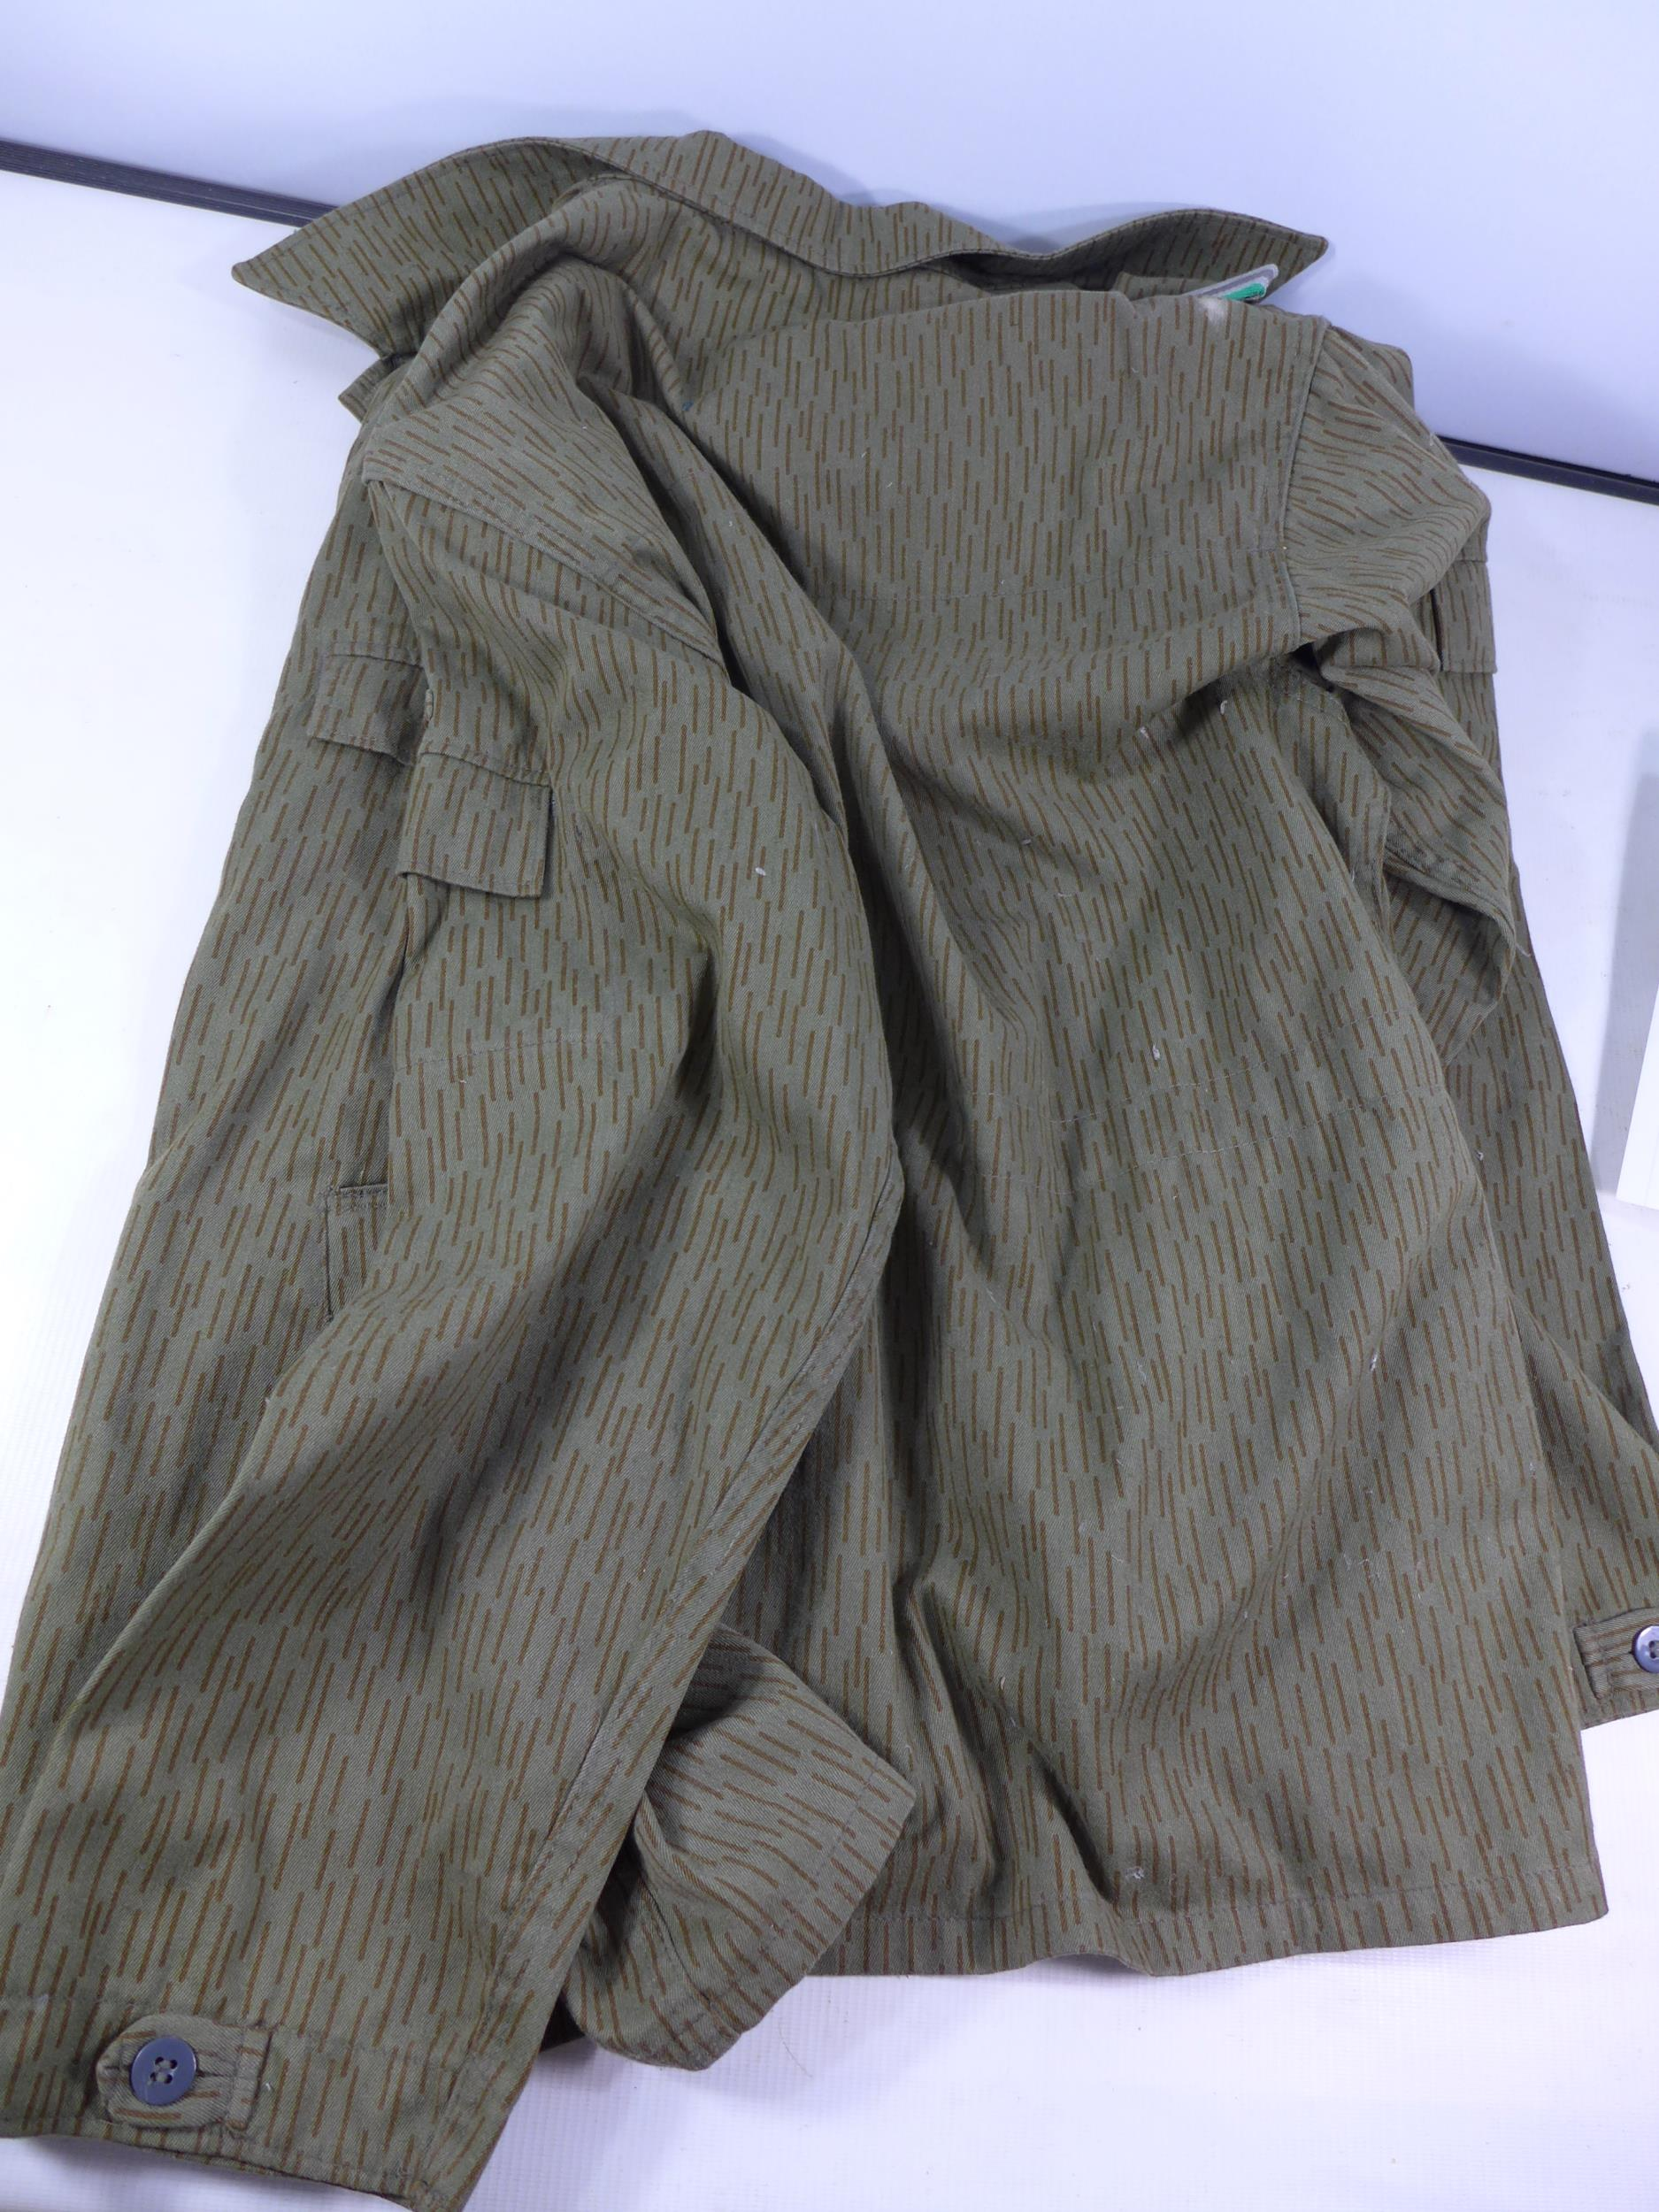 A POST WWII UNIFORM, PROBABLY GERMAN COMPRISING OF A JACKET AND TROUSERS - Image 3 of 6